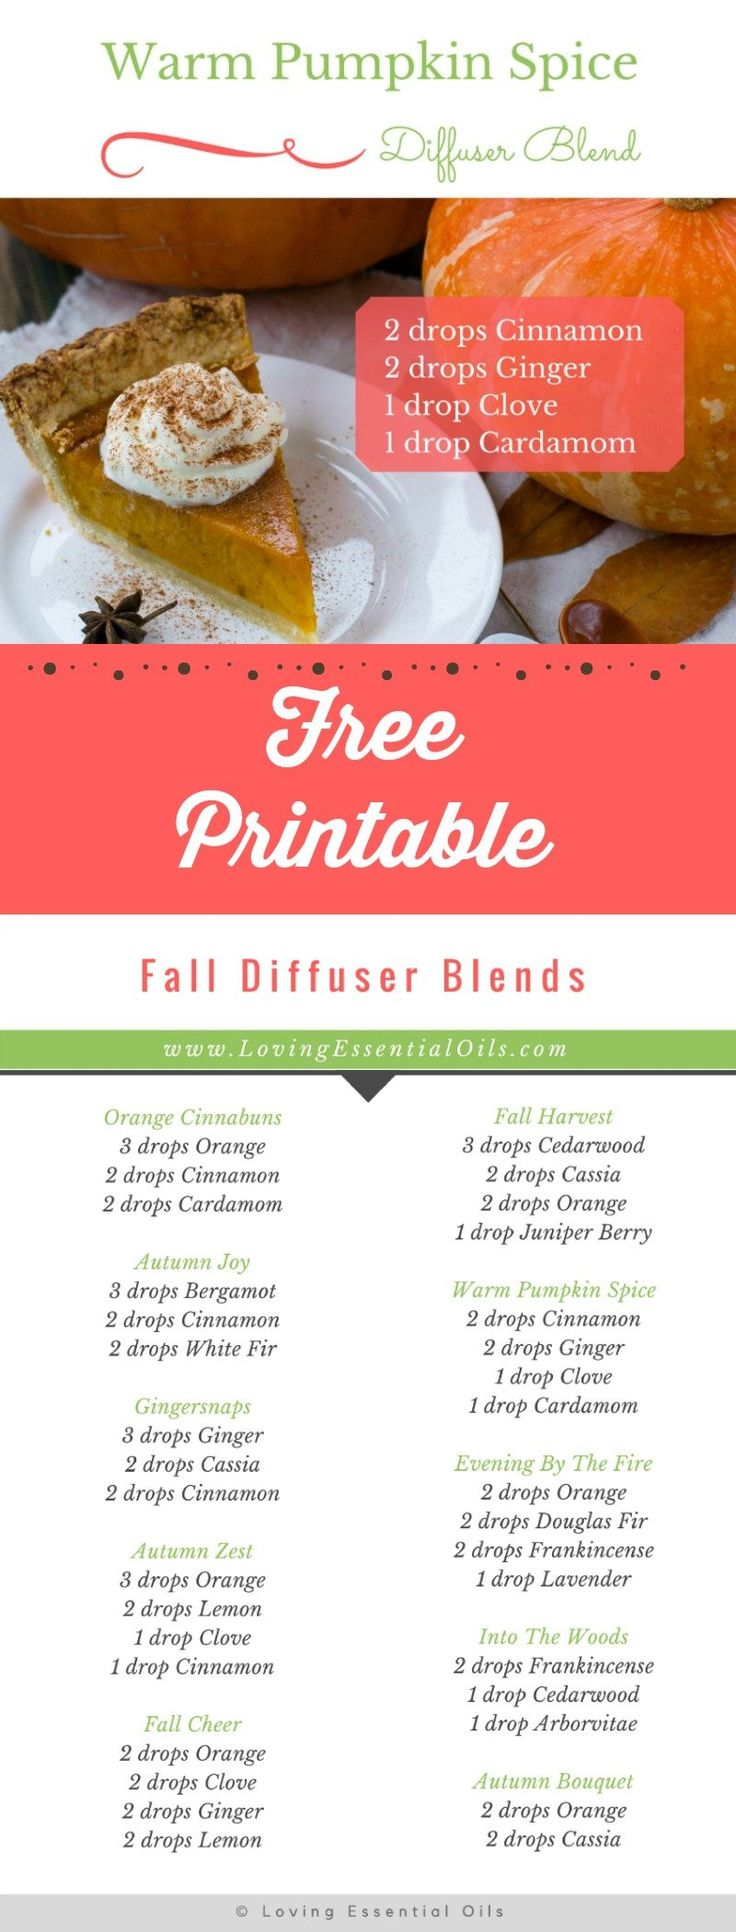 FREE Printable - Fall Diffuser Blends. Warm pumpkin spice includes cinnamon, ginger, clove and cardamom. #freeprintable #diffuserblends #fall #essentialoils